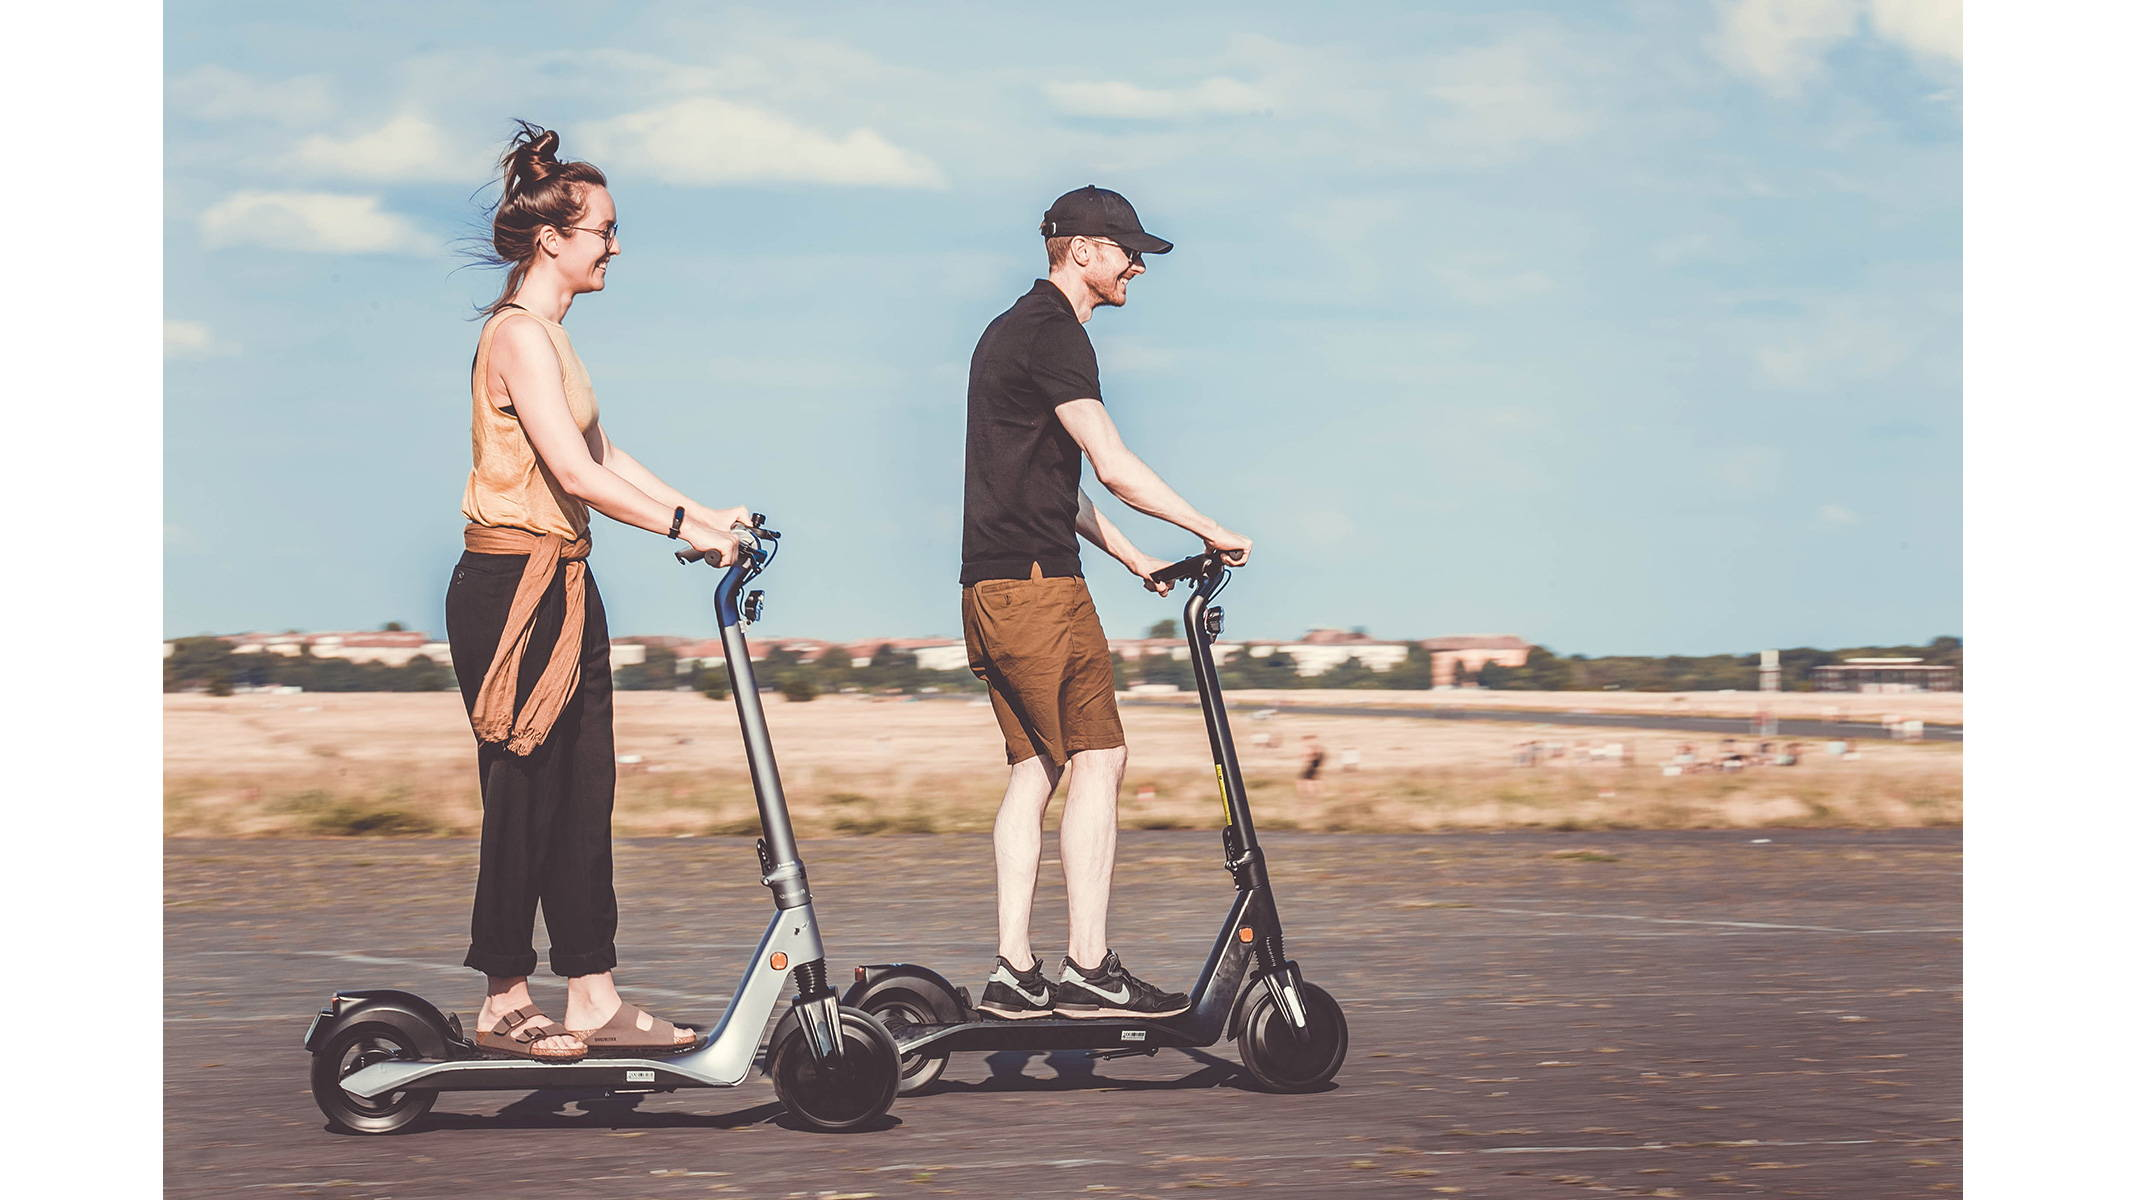 Okai-Electric-Scooter-&-Electric-Bike-Manufacturer-two-friends-riding-and-smiling-on-an-es500-electric-scooter